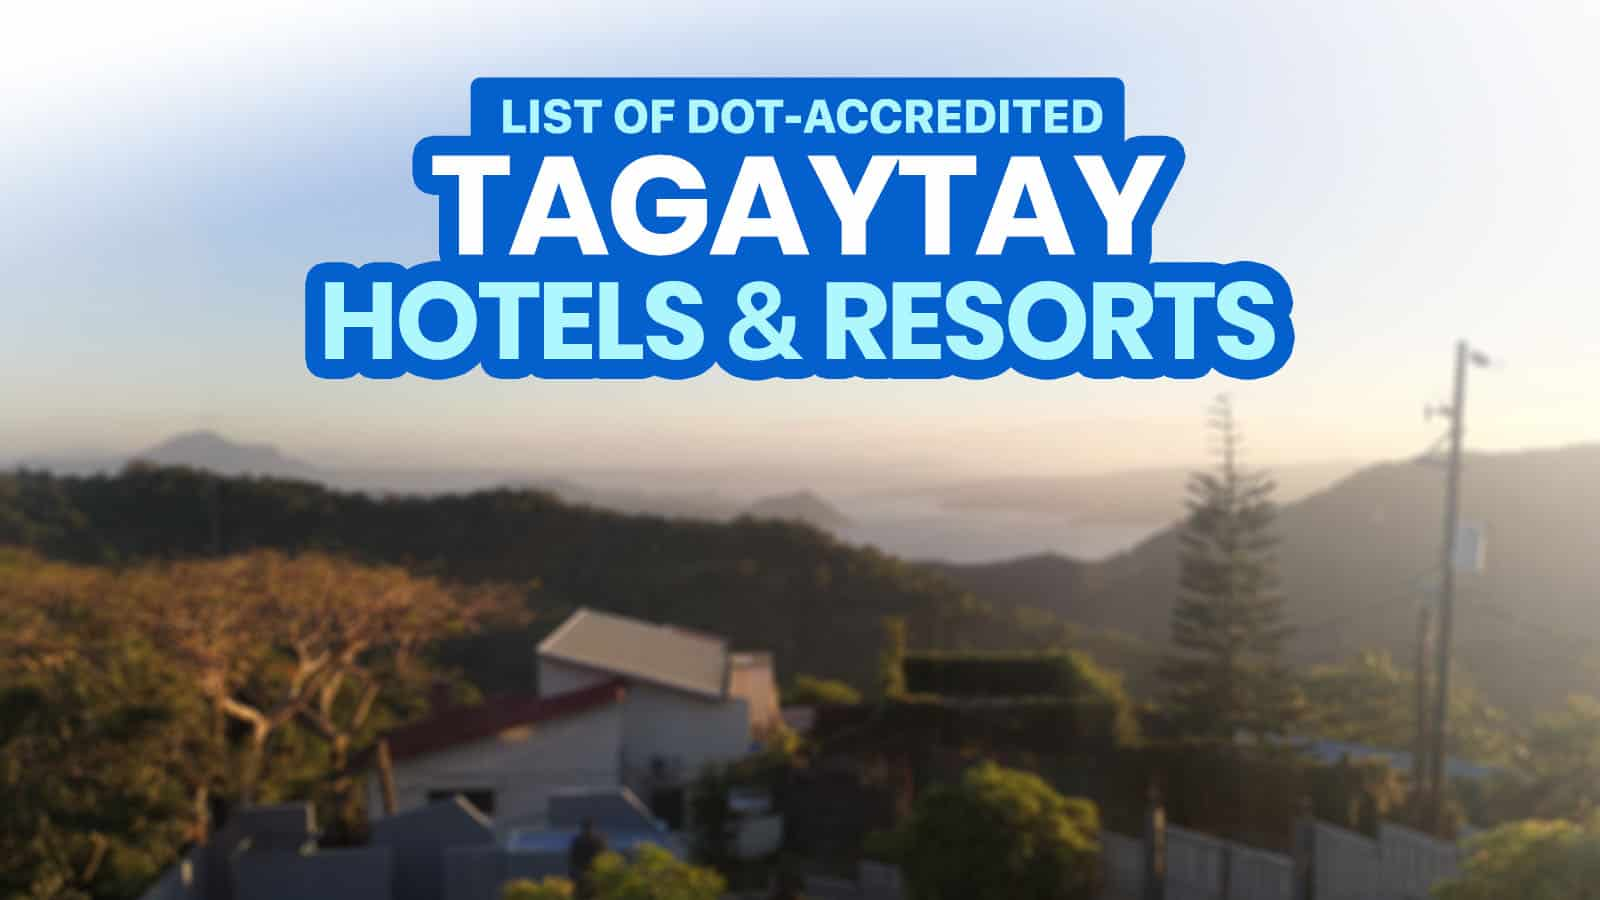 24 DOT-Accredited Hotels in TAGAYTAY & CAVITE (Open Now or Soon)